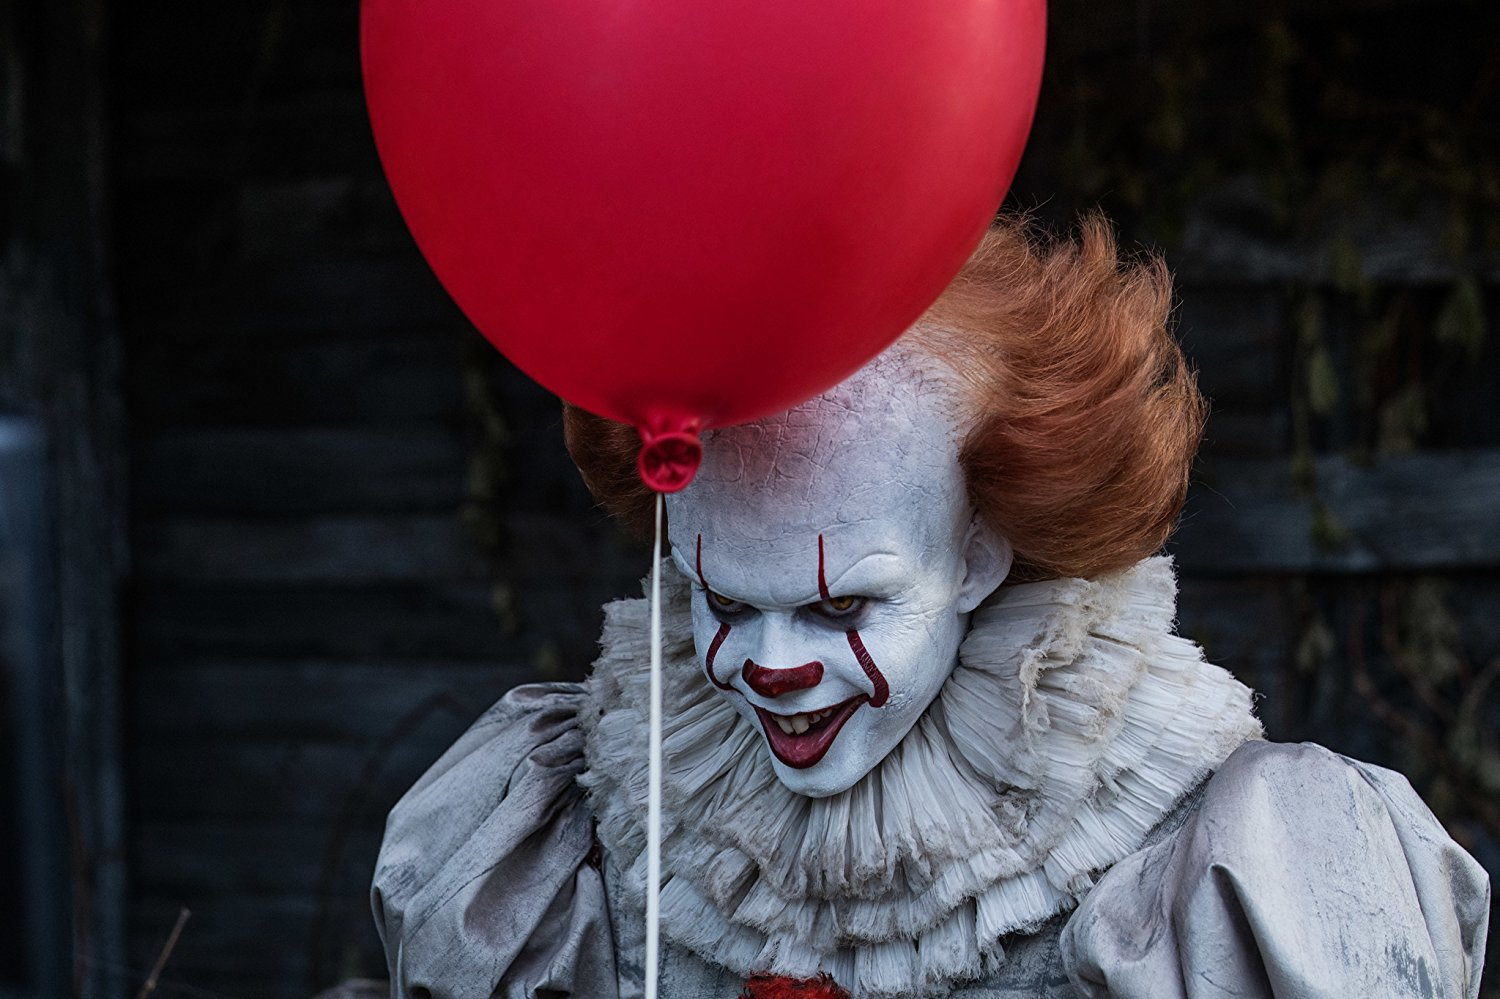 Image from Brooke Palmer / Warner Bros. Pictures / Associated Press